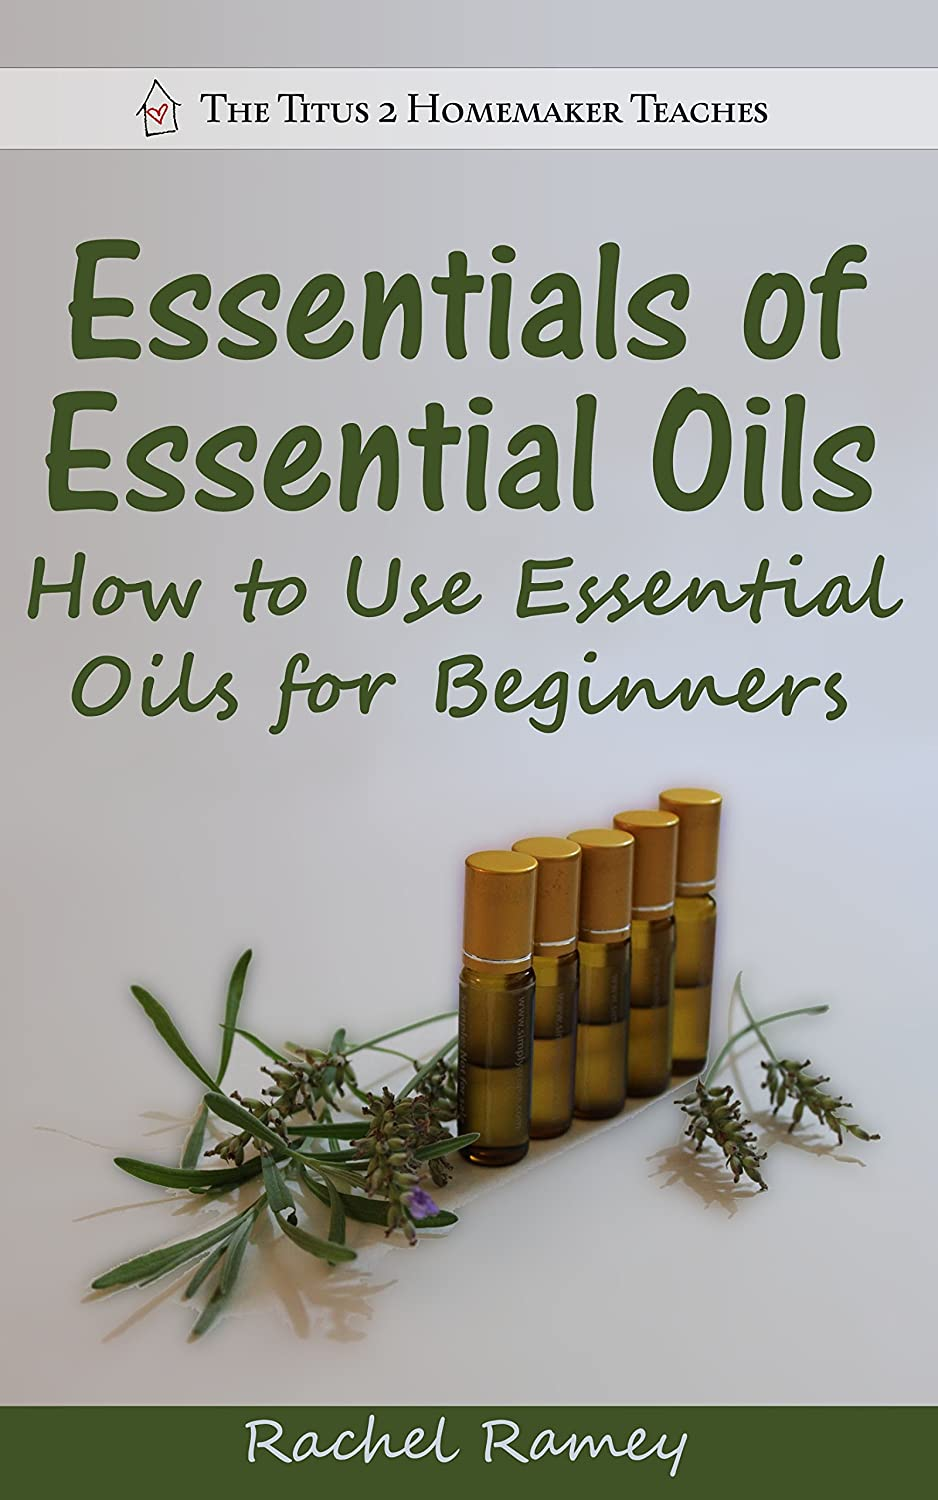 Essentials of Essential Oils: How to Use Essential Oils for Beginners (The Titus 2 Homemaker Teaches) by Rachel Ramey